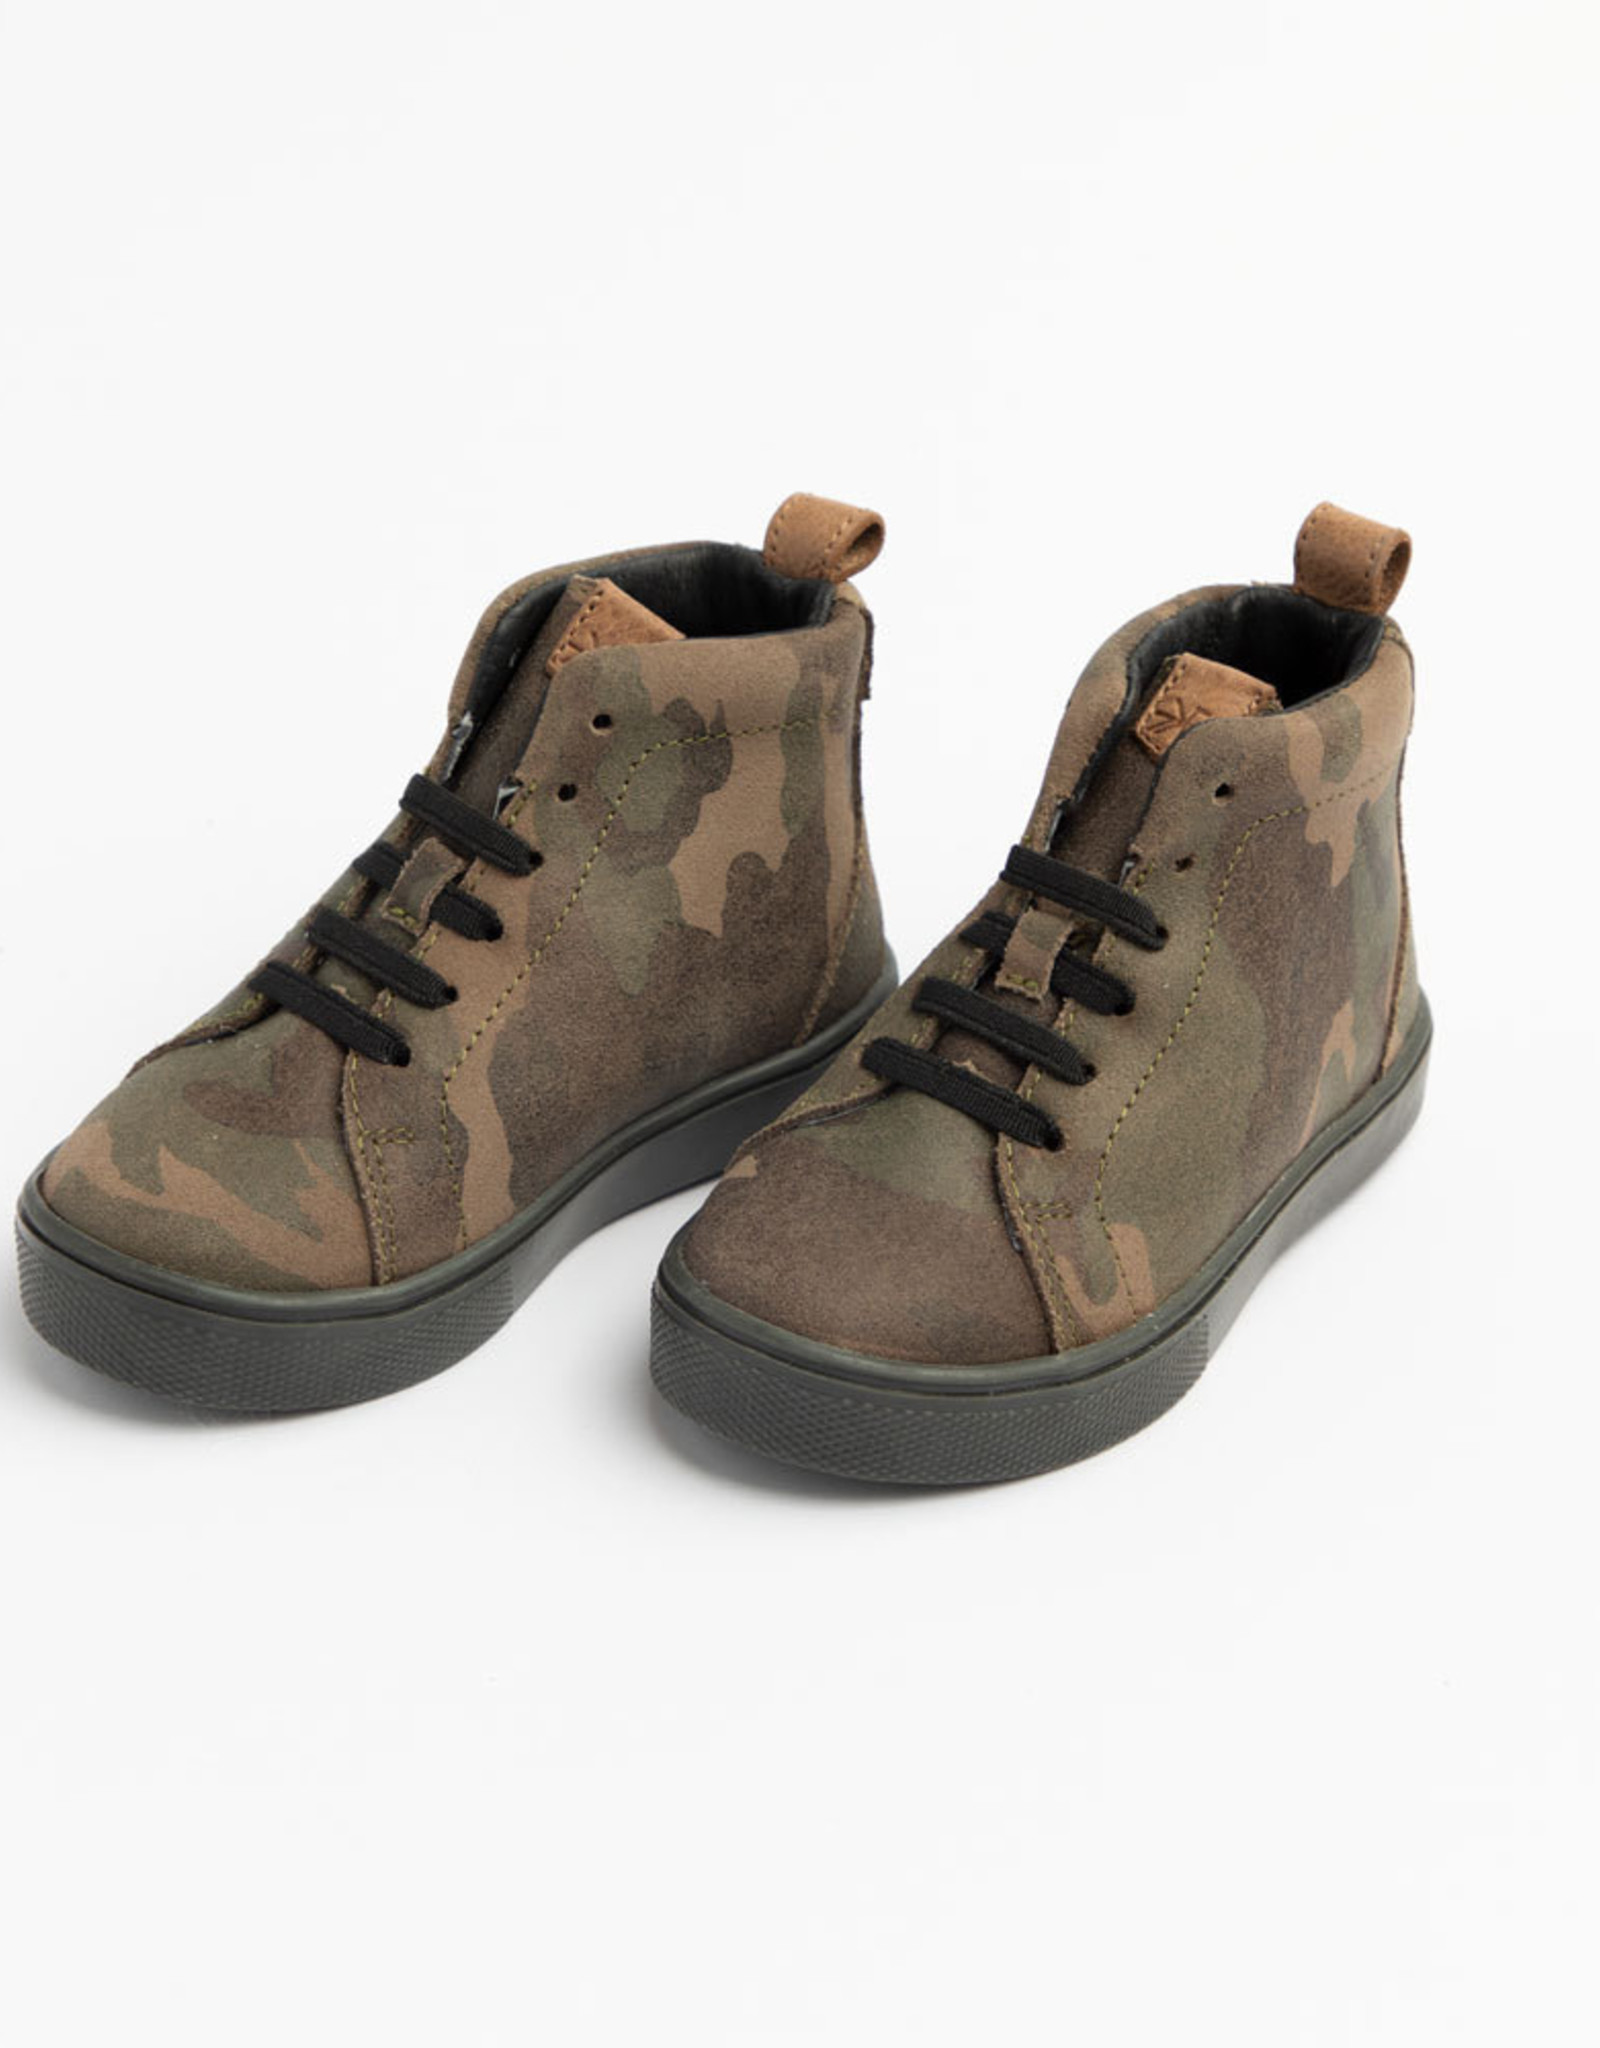 Freshly Picked leon boot- camo